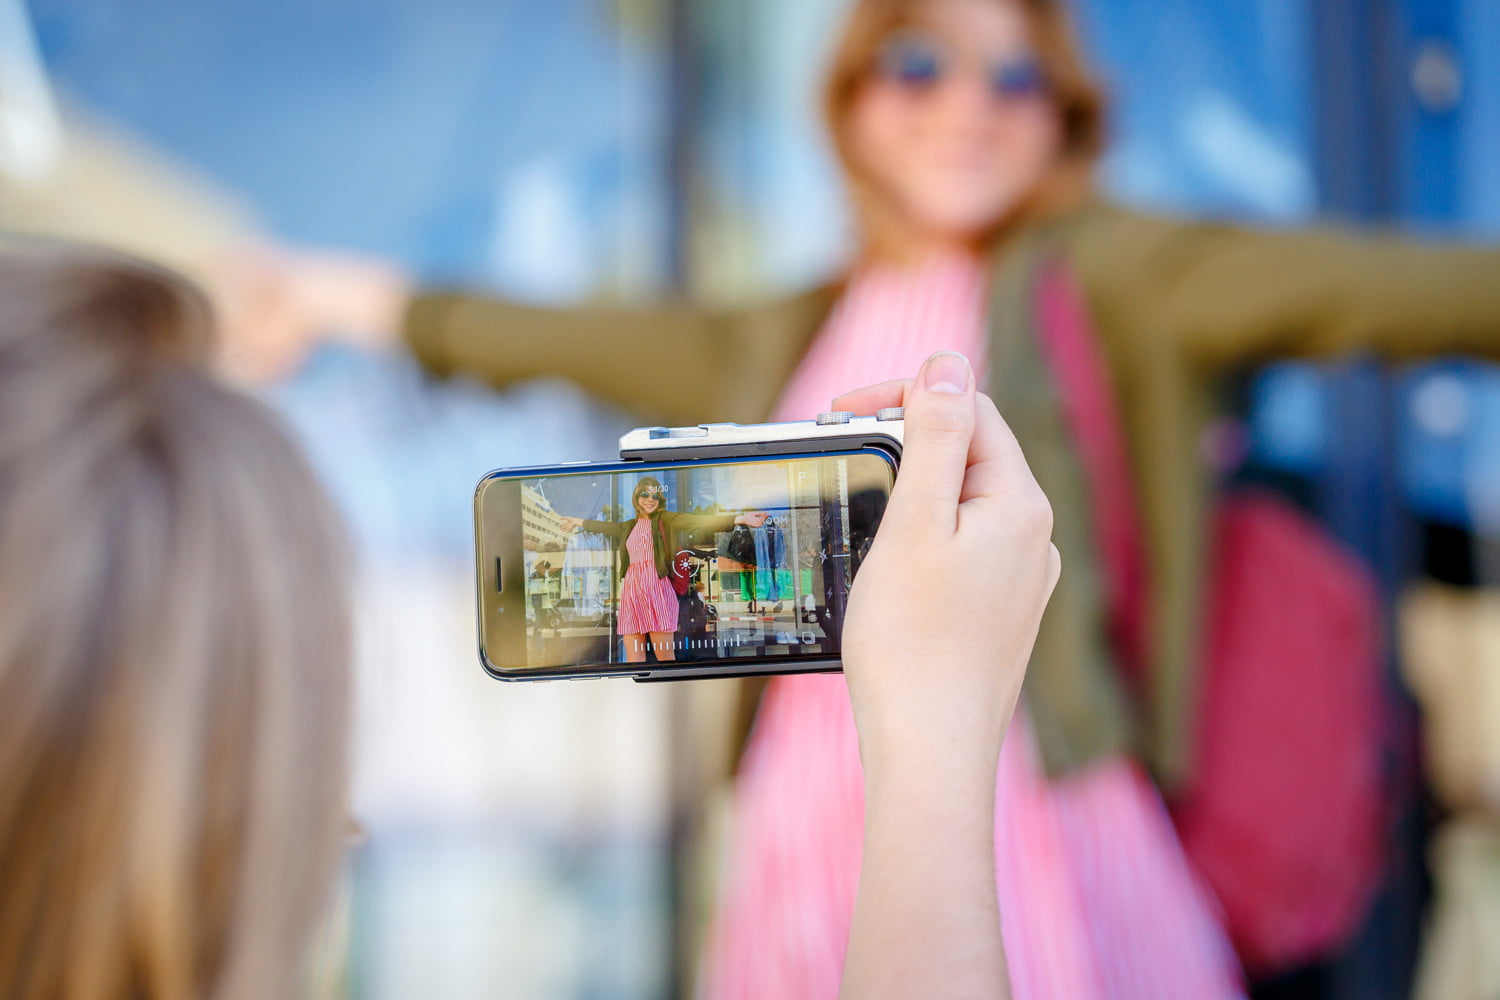 pictar iphone case provides dslr like shooting experience miggo 14